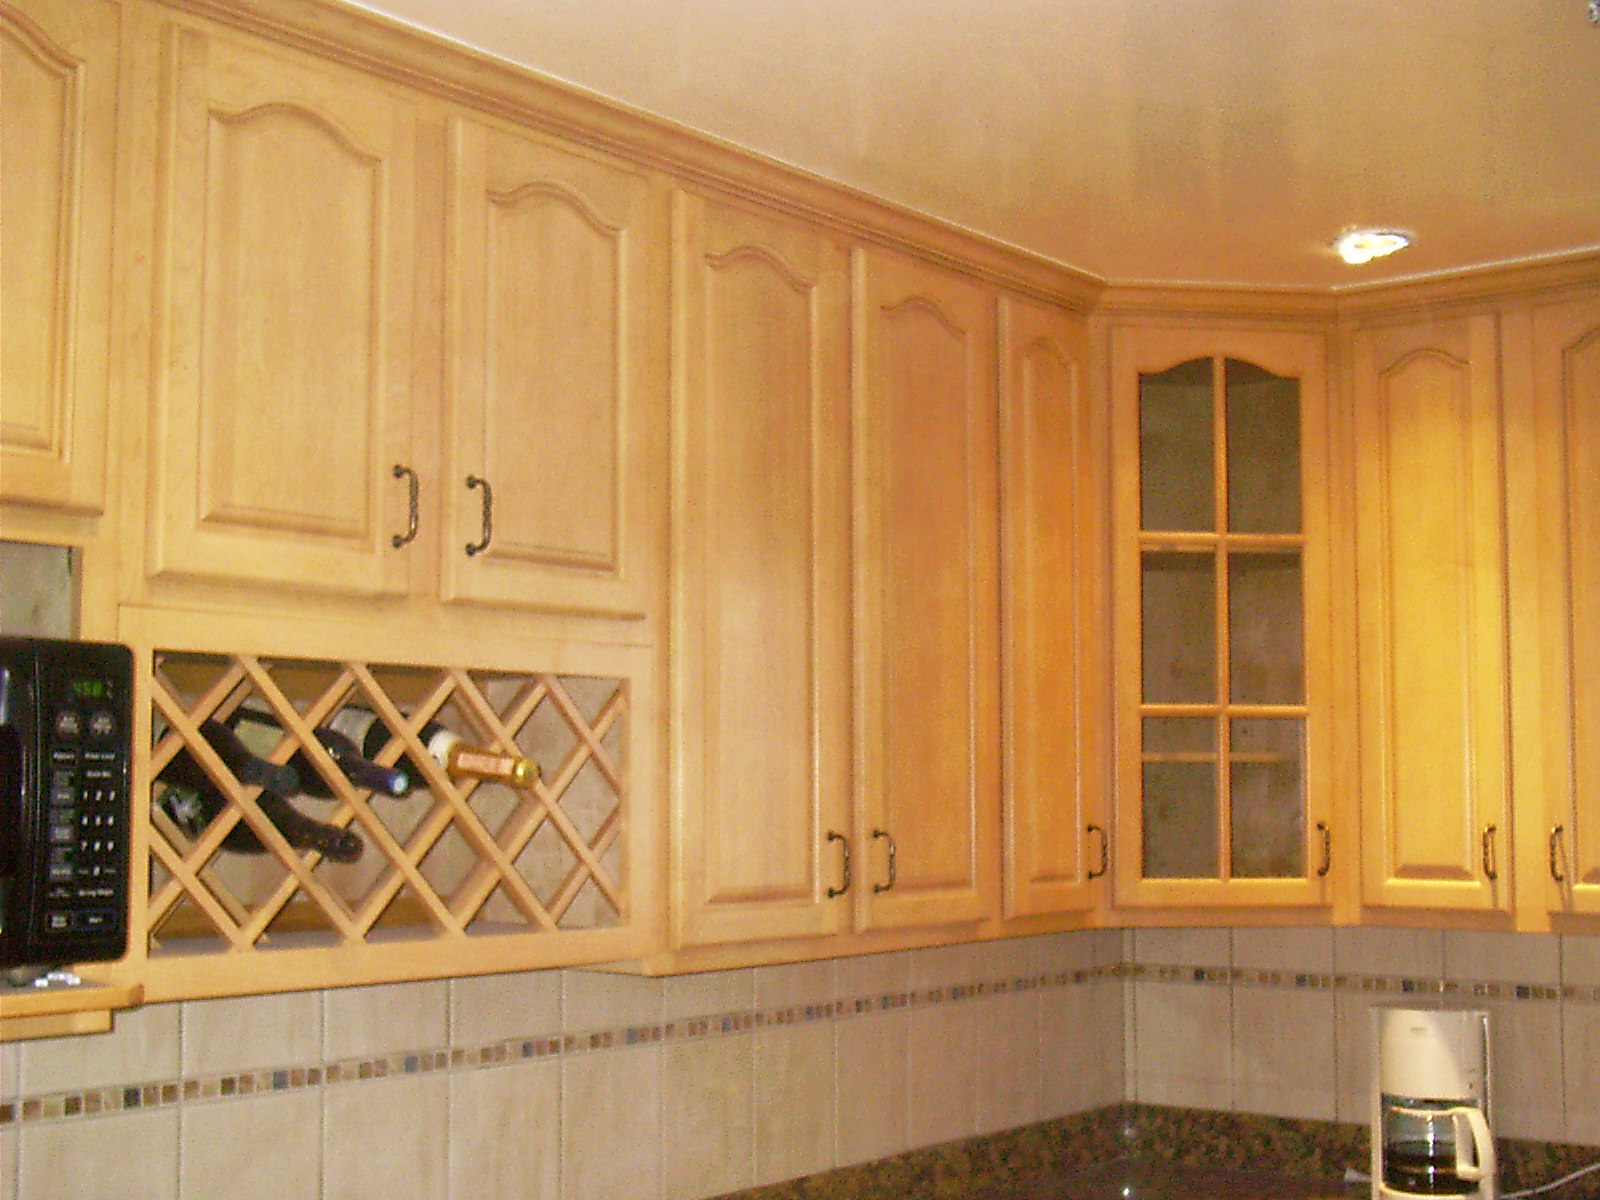 Kitchen storage cabinets with doors Photo - 1